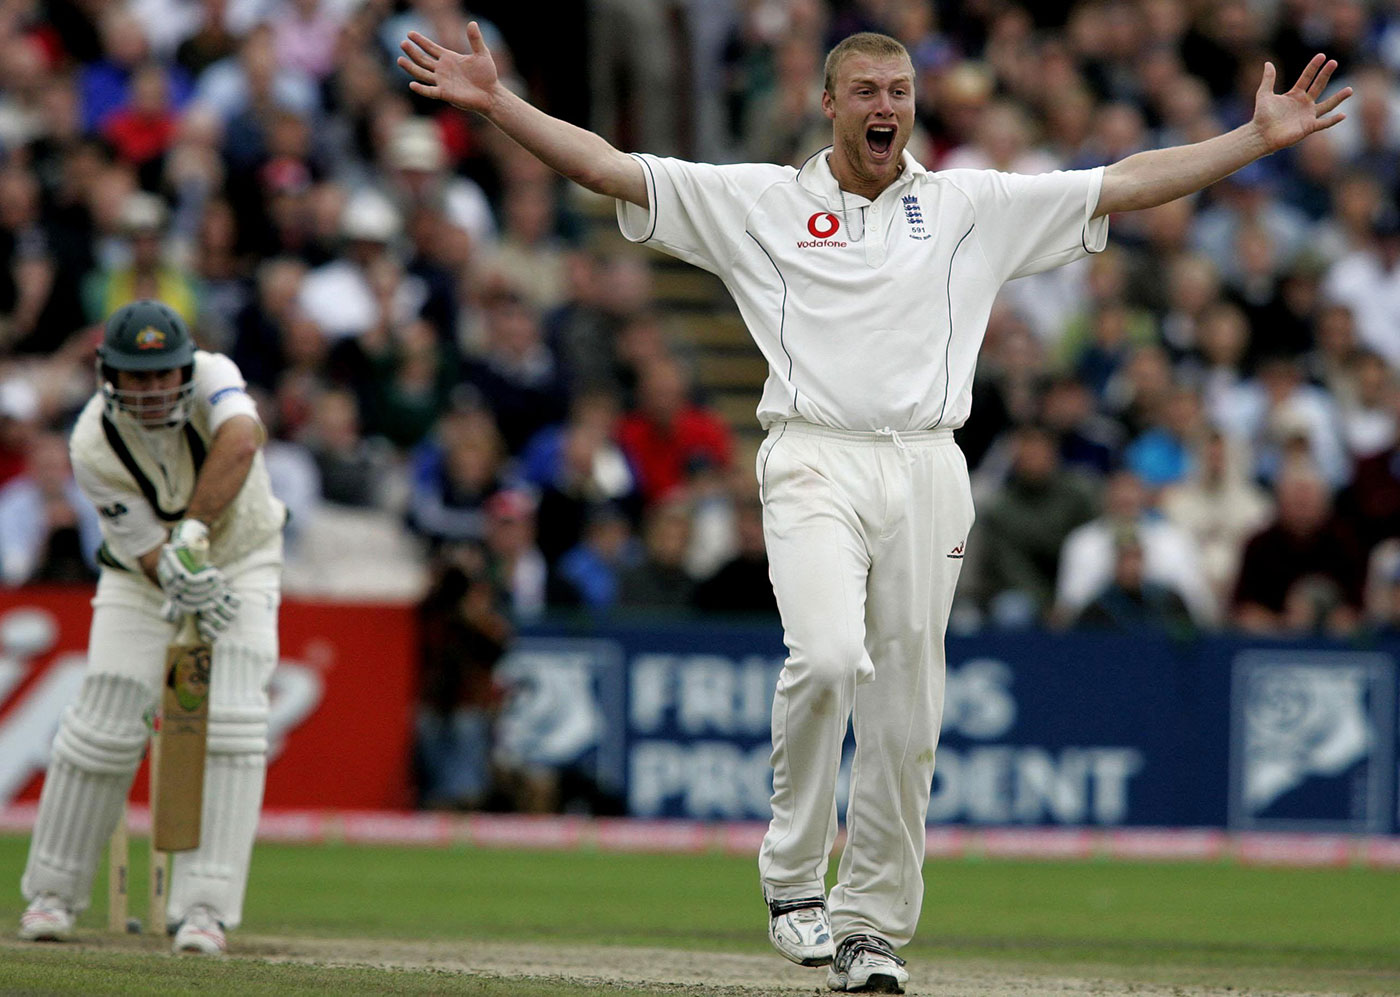 Andrew Flintoff worked Ricky Ponting over at Edgbaston, in the 2005 Ashes